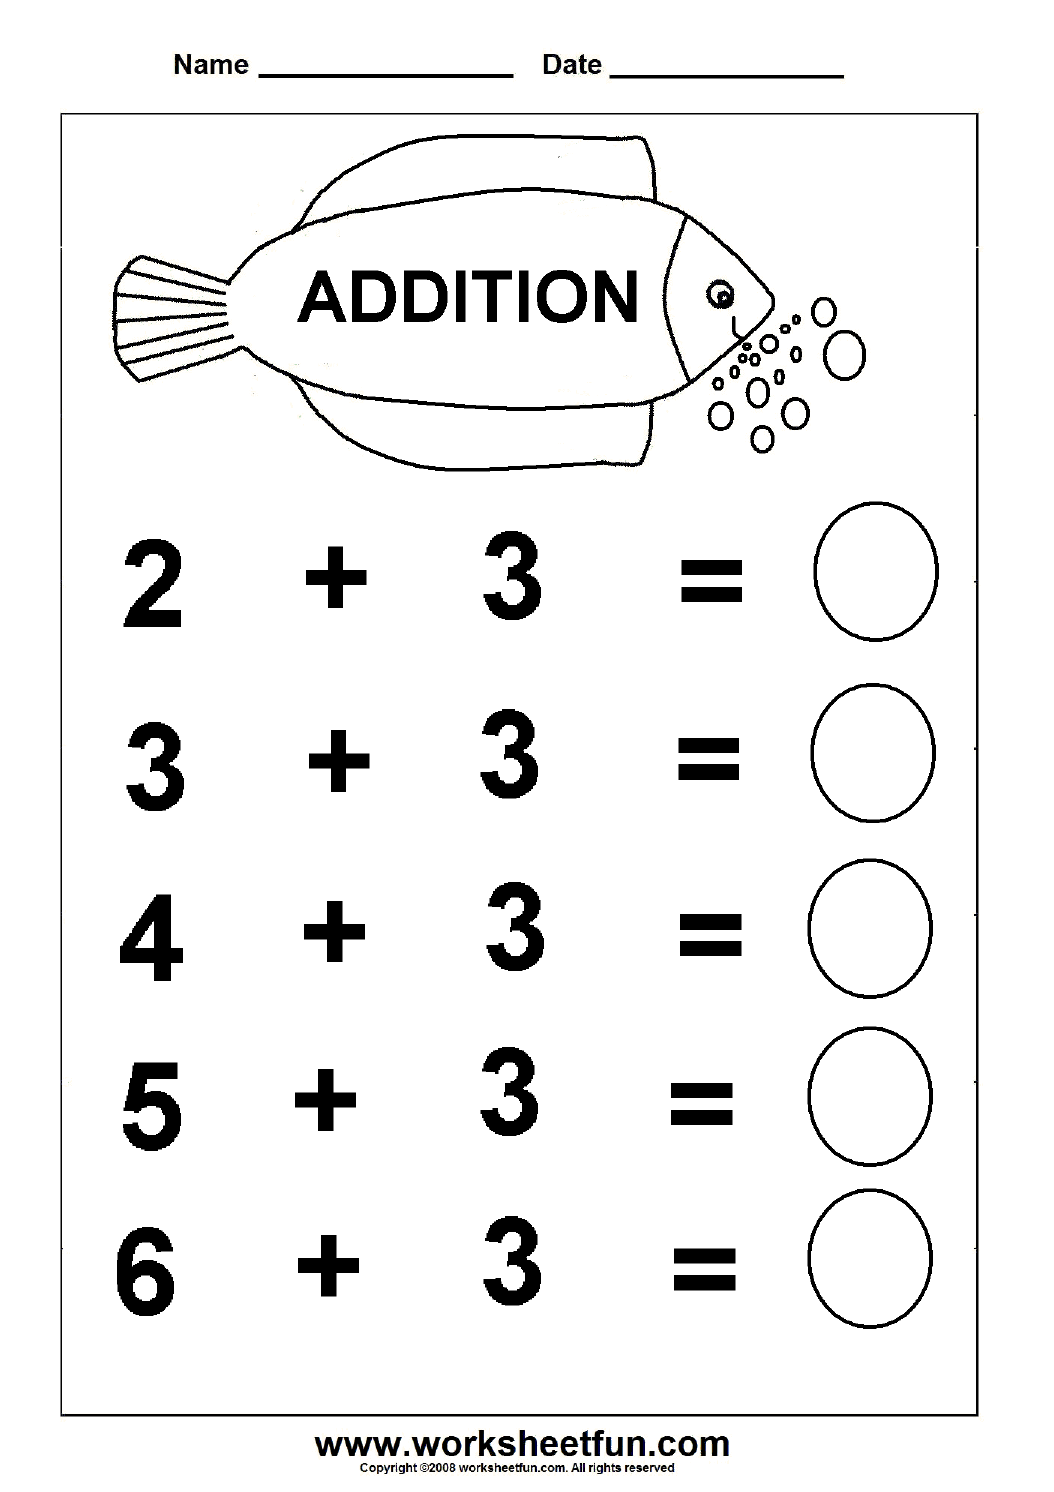 Printable Adding Worksheets | Kindergarten Addition Worksheet ...